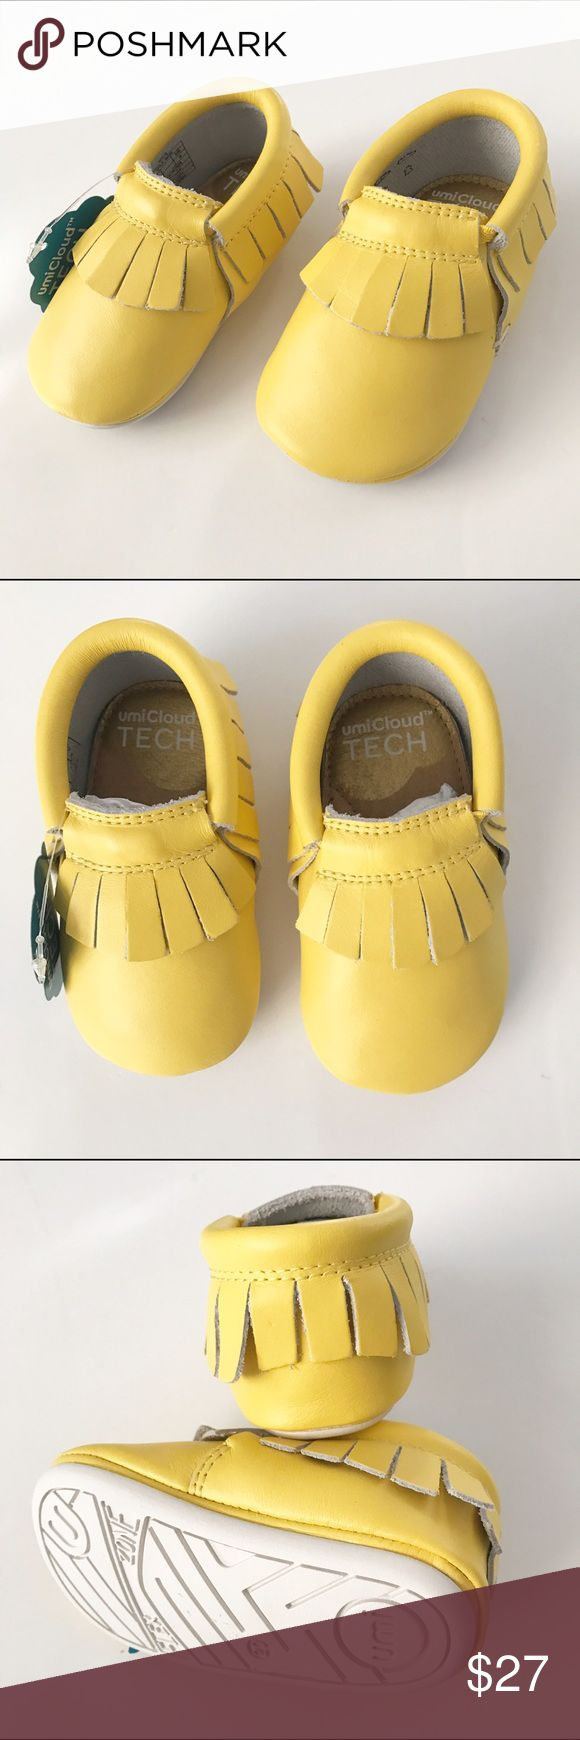 NWT! UmiBaby Yellow Moccasins Brand new in box! Adorable yellow moccasins with soft rubber soles. Retails for $50 Perfect for spring, summer and easter! Umi Shoes Moccasins